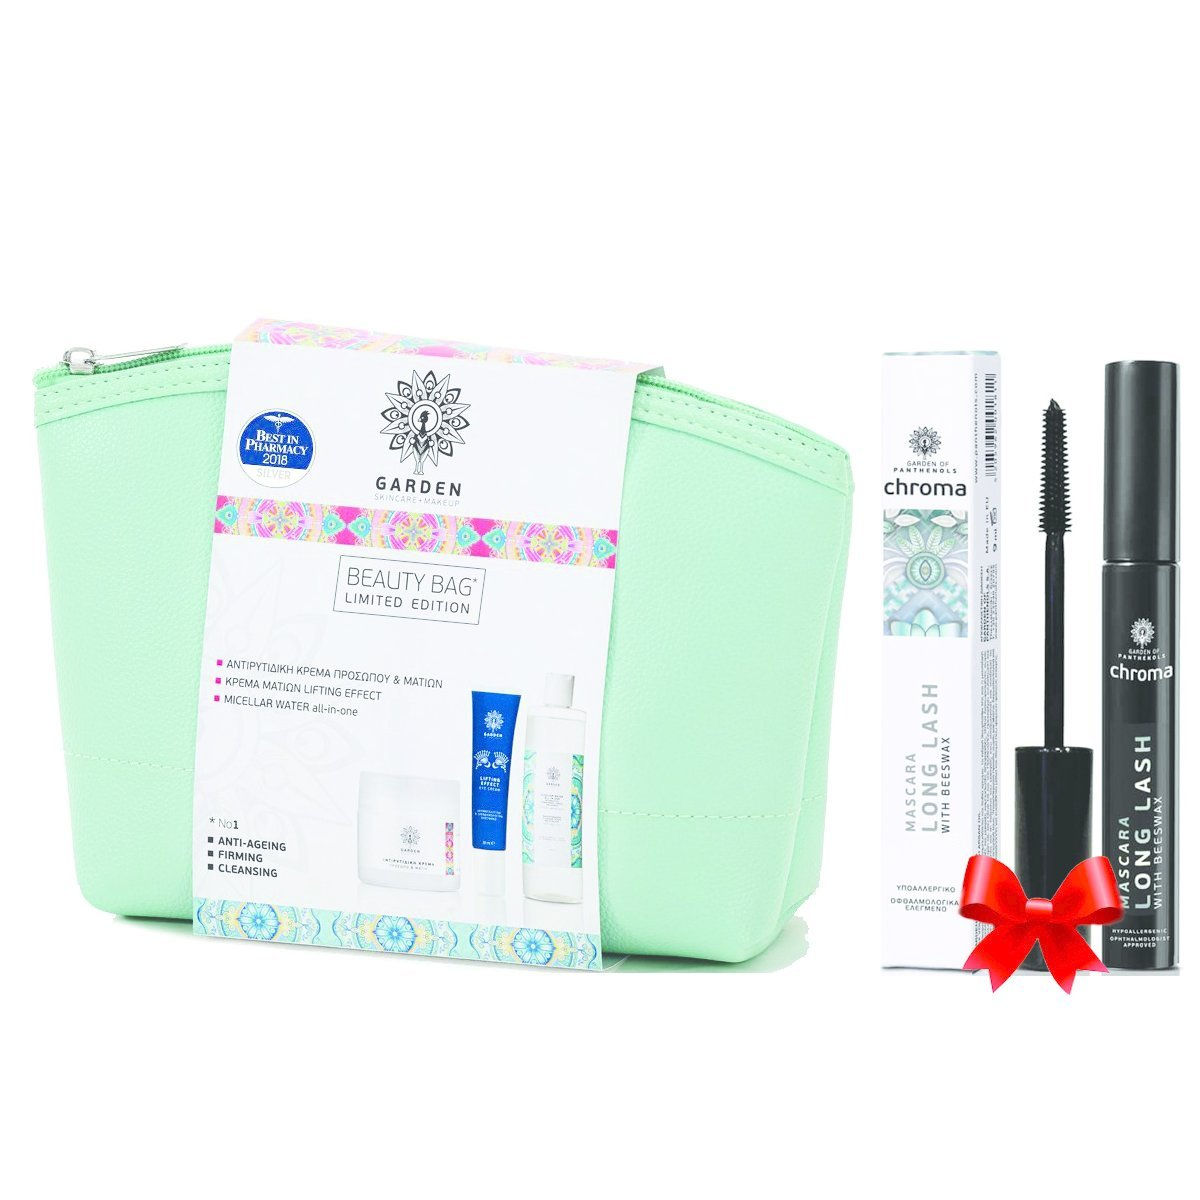 Garden of Panthenols Πακέτο Προσφοράς Beauty Bag Set No1 Anti-Ageing, Firming, Cleansing & Δώρο Long Lash Mascara 9ml